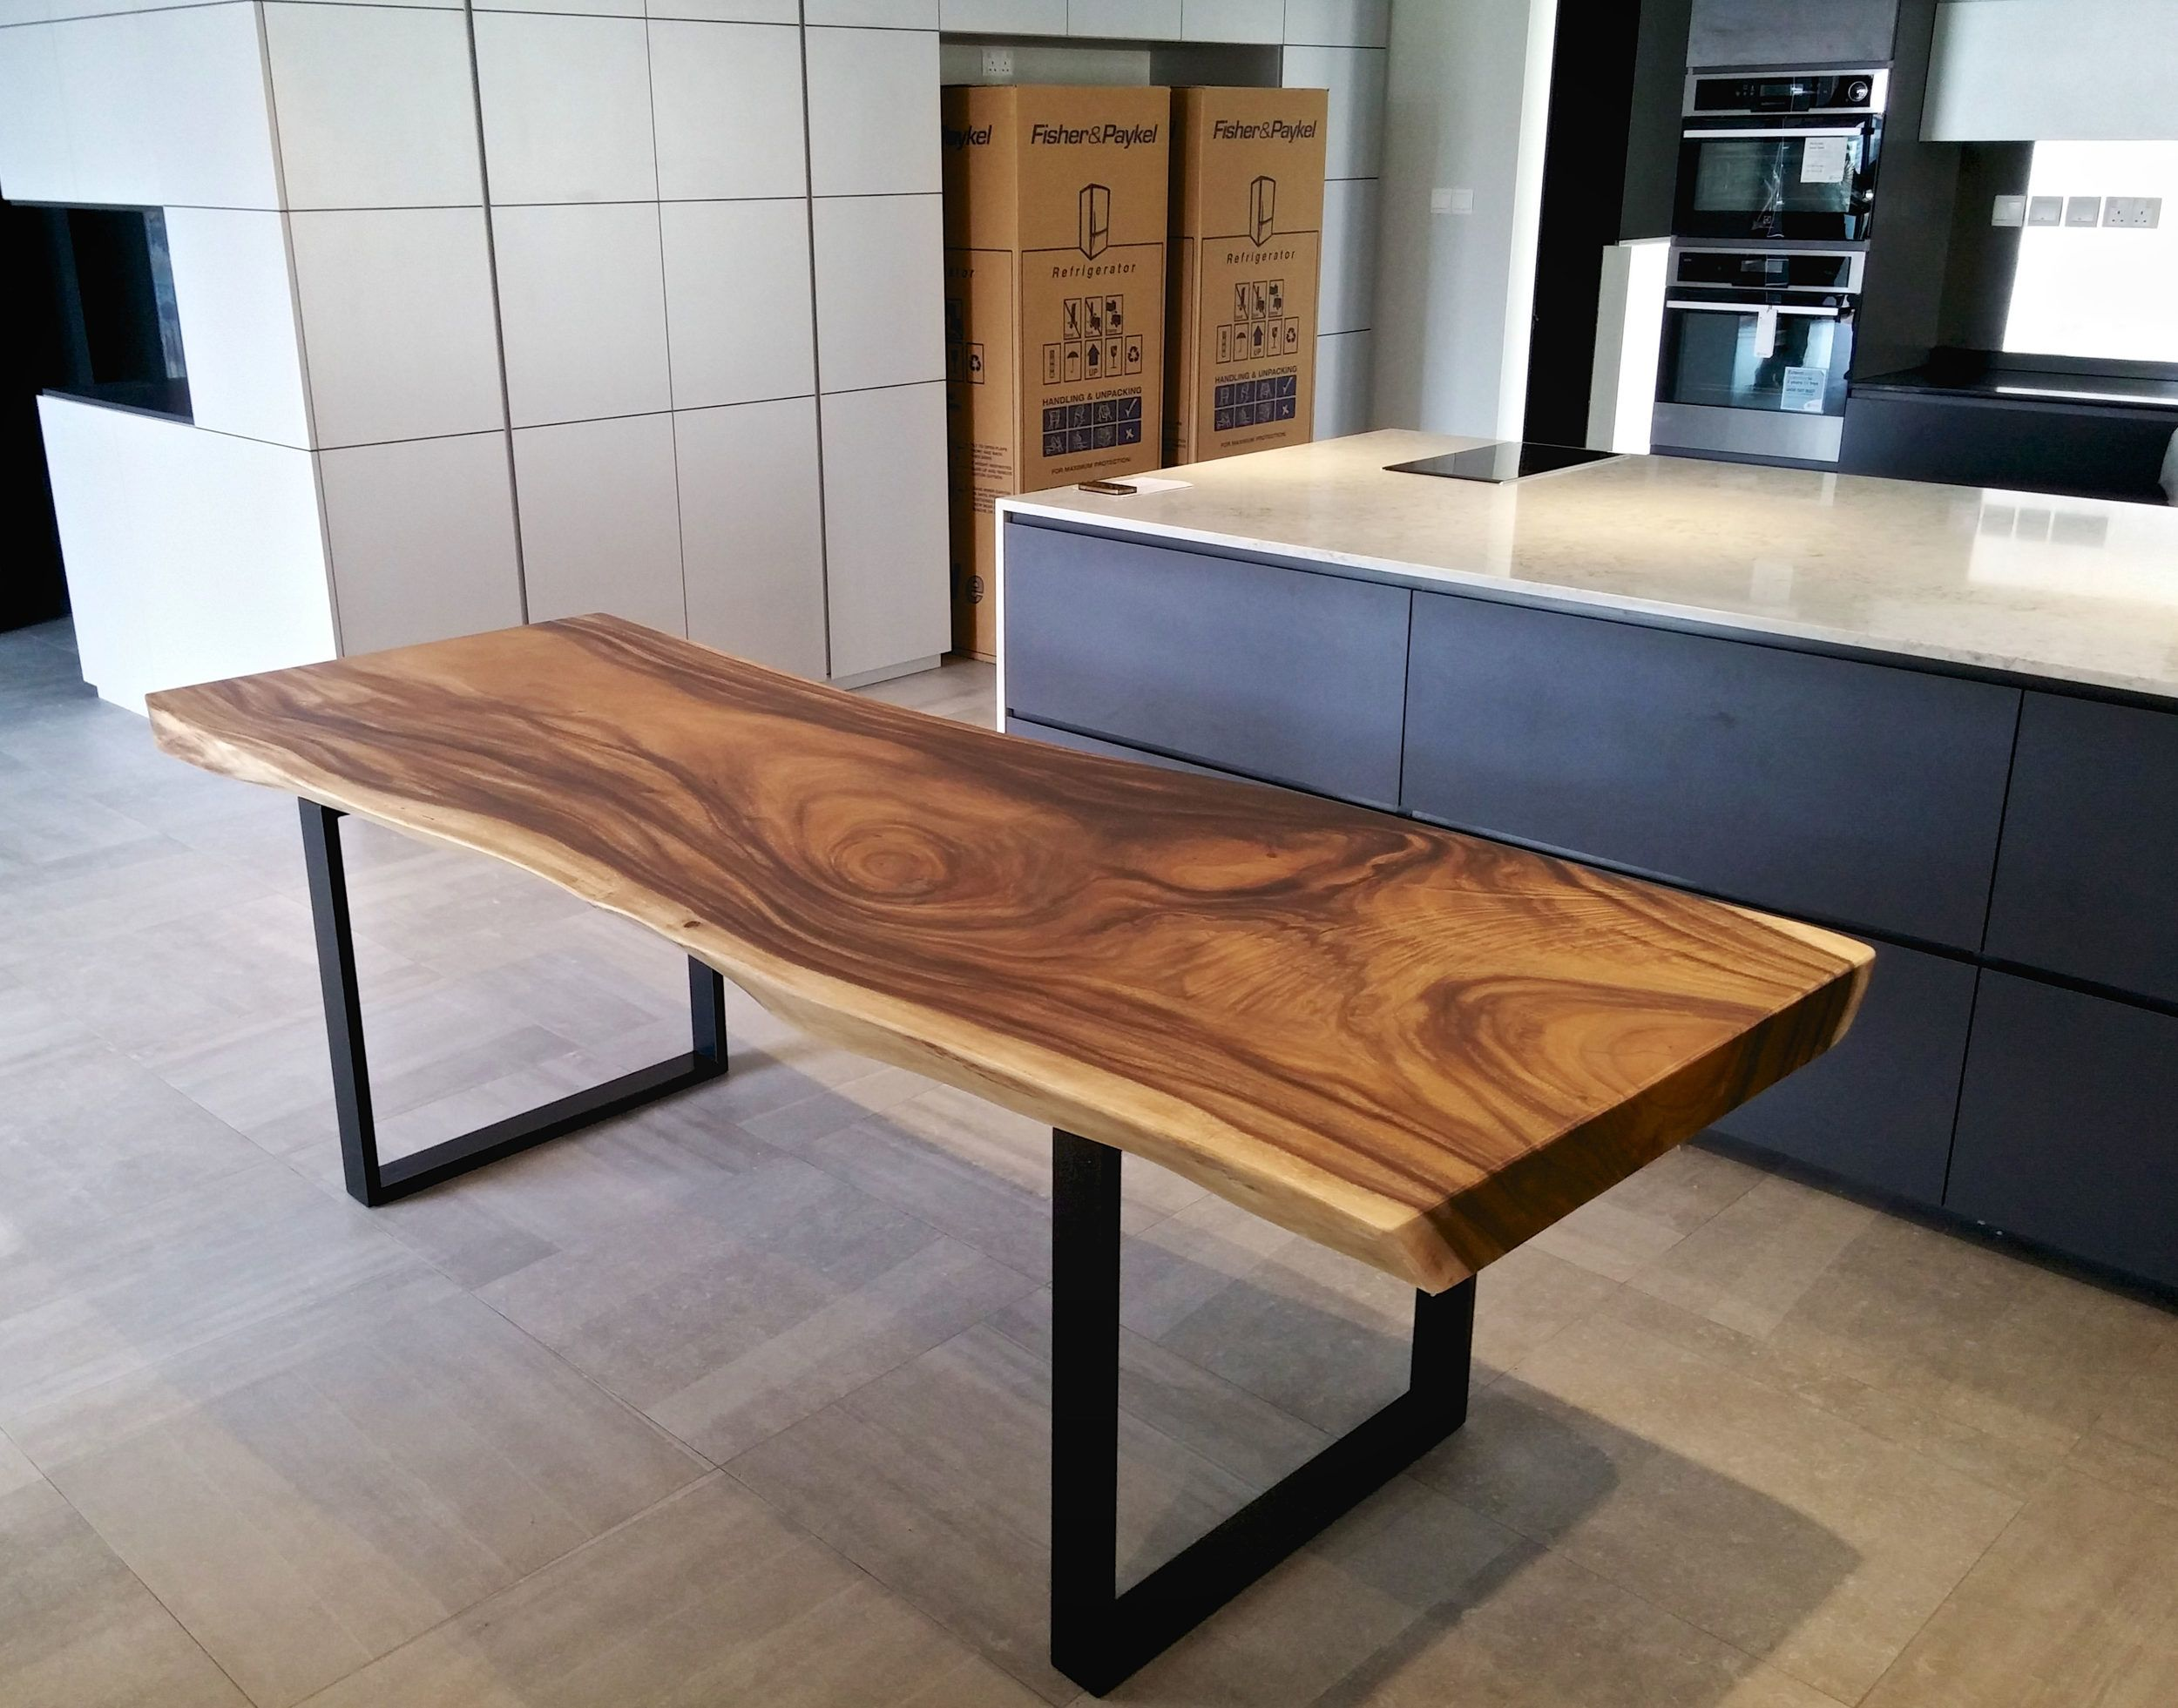 Solid wood dining table with black metal legs XOFFUSW